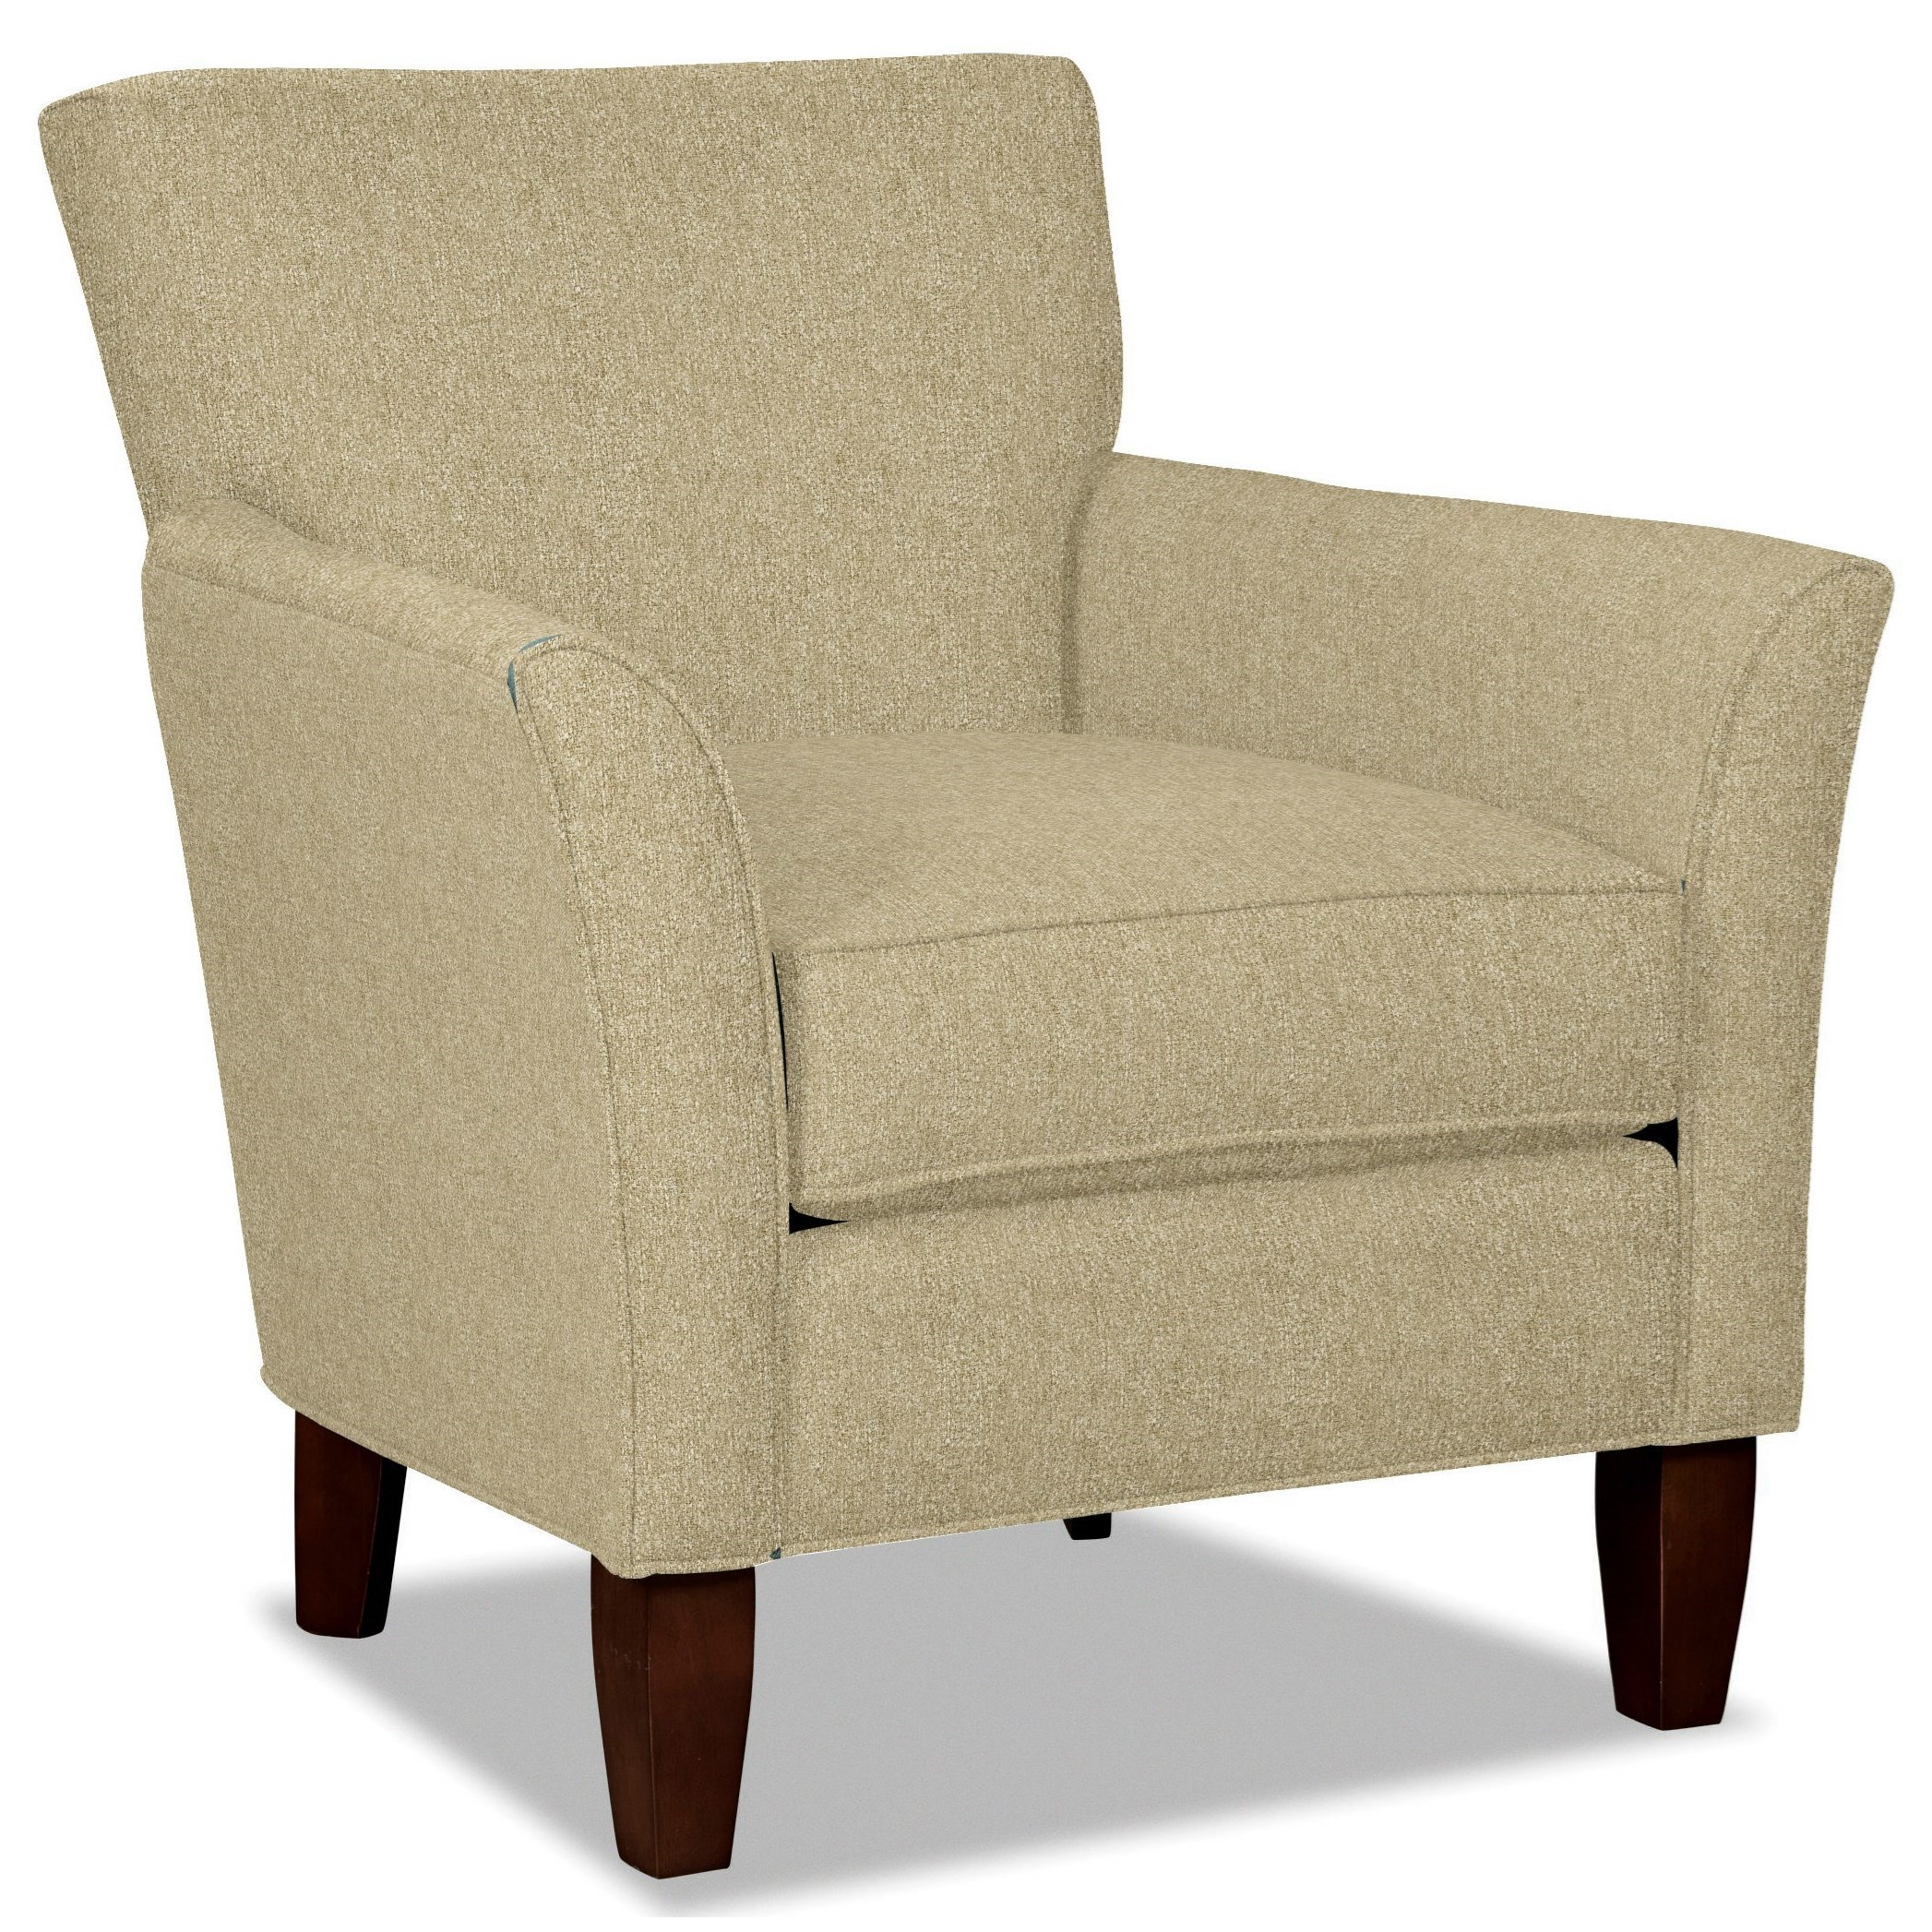 Craftmaster 060110 Accent Chair - Item Number: 060110-BAHAMA-10